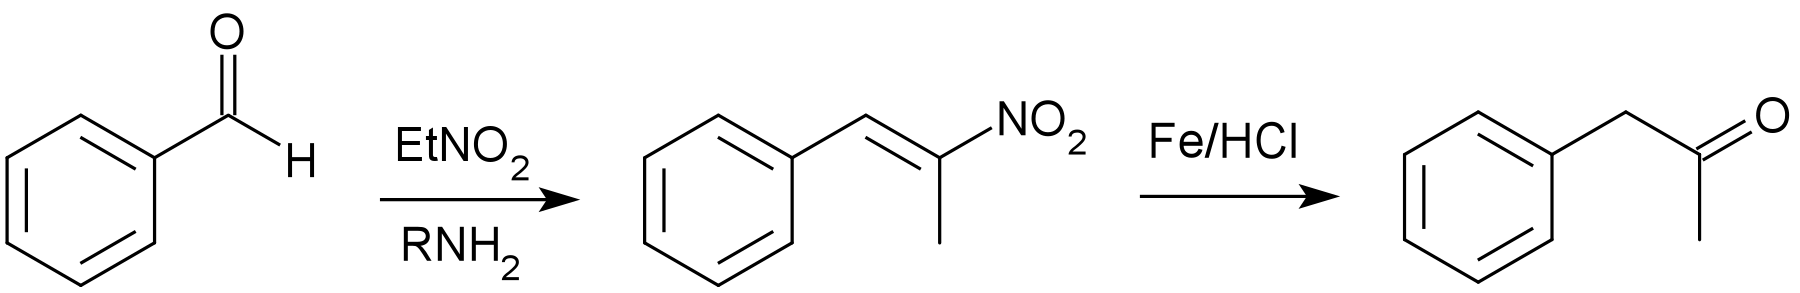 File:Phenylacetone via phenyl-2-nitropropene png - Wikimedia